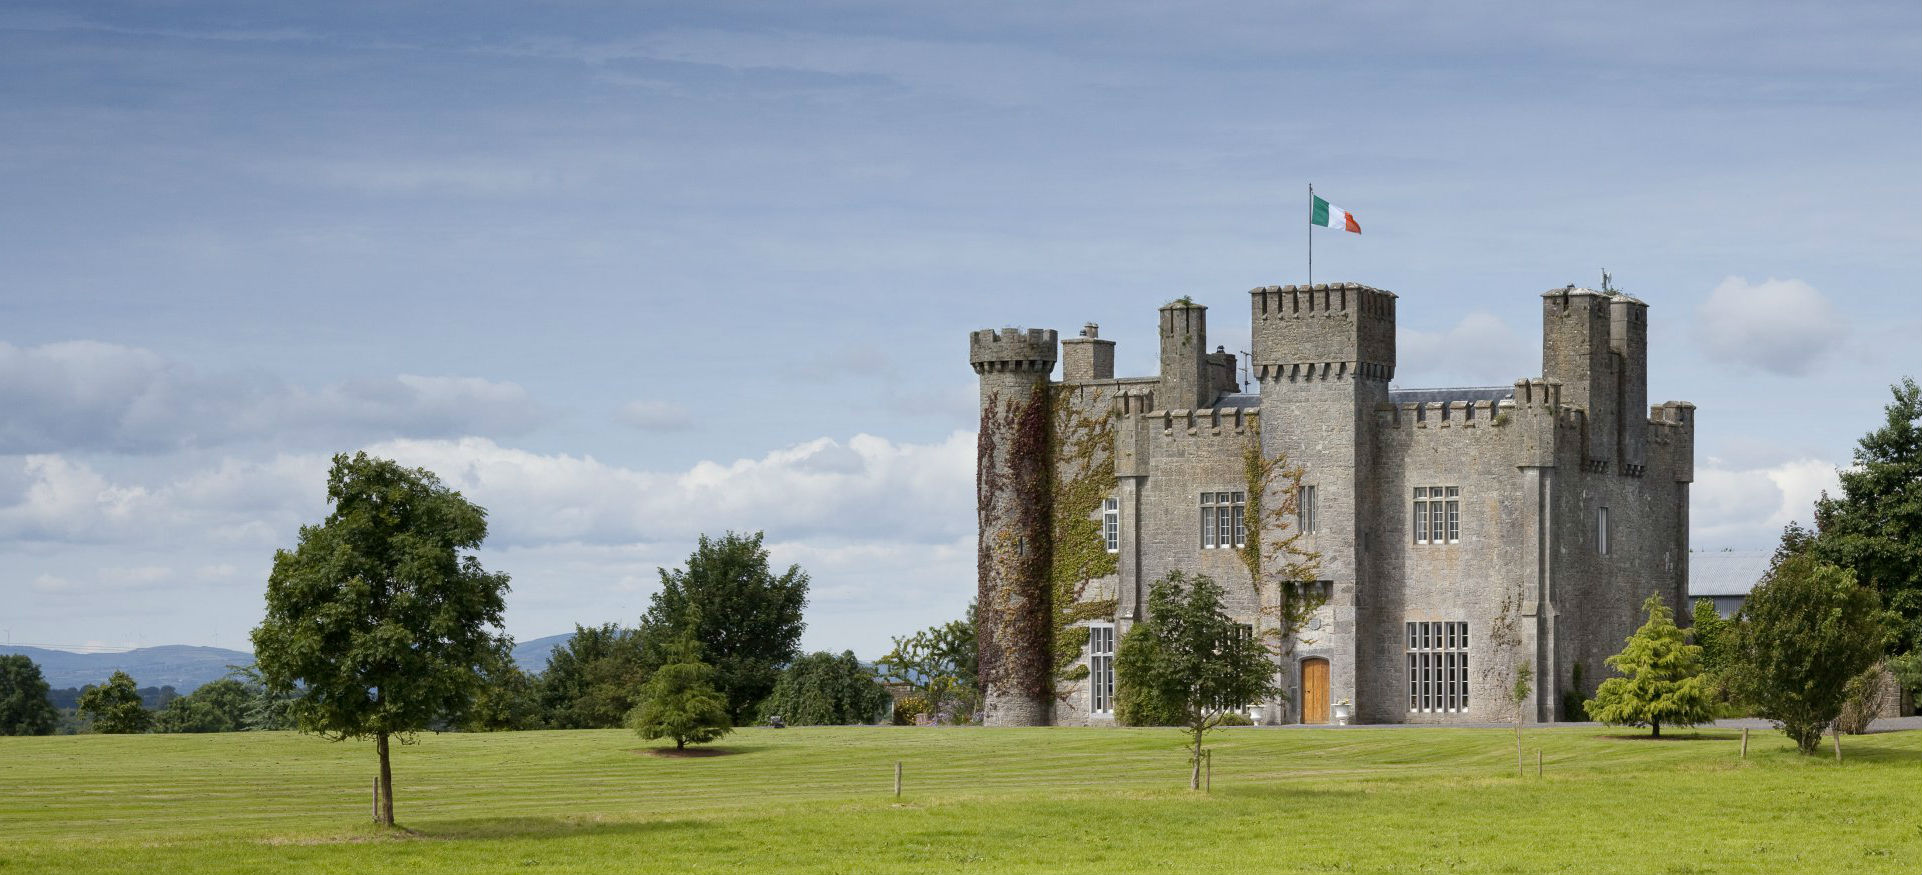 Castle Vacation - Lisheen Castle, Ireland